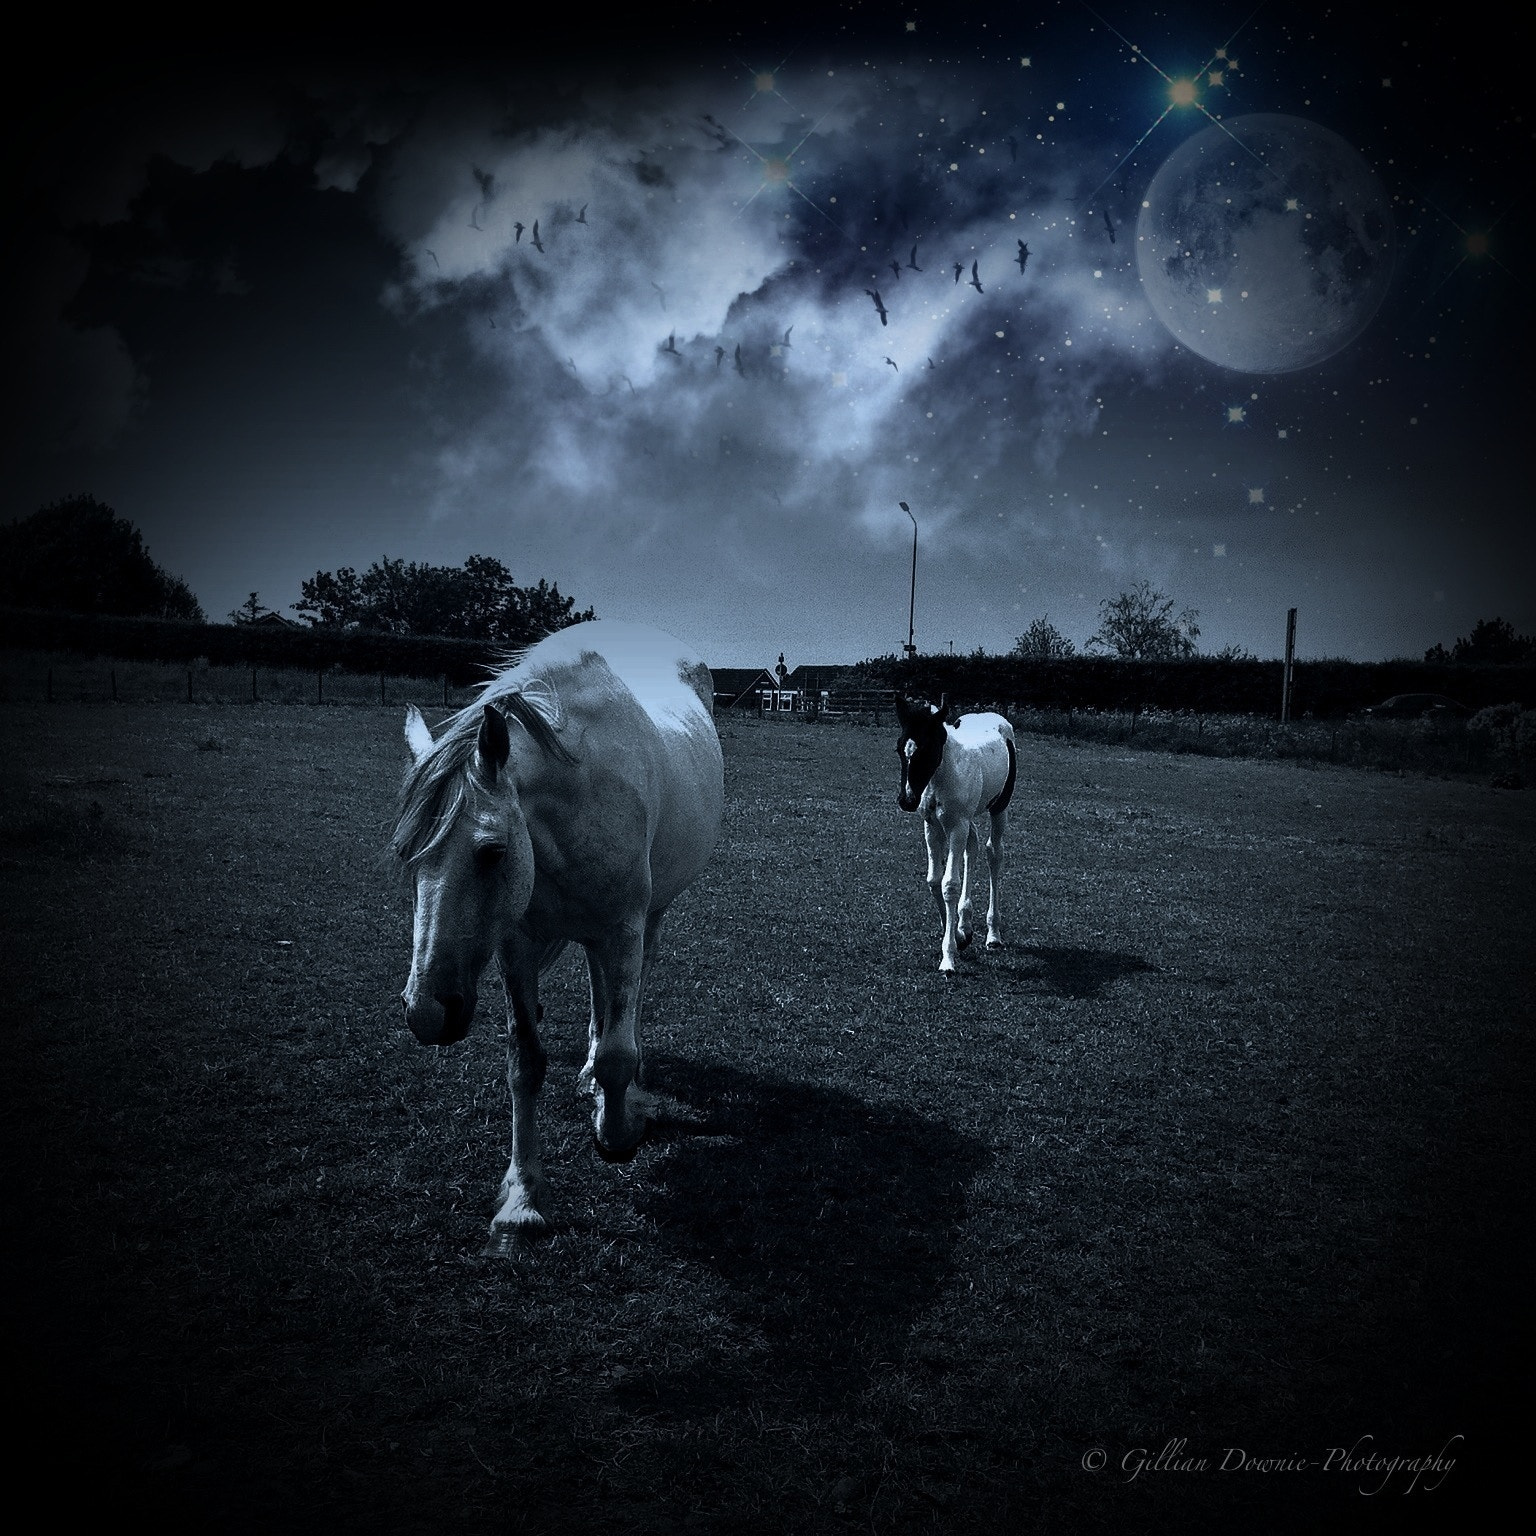 Photograph Moonlit Walk by Gillian Downie-Photography on 500px